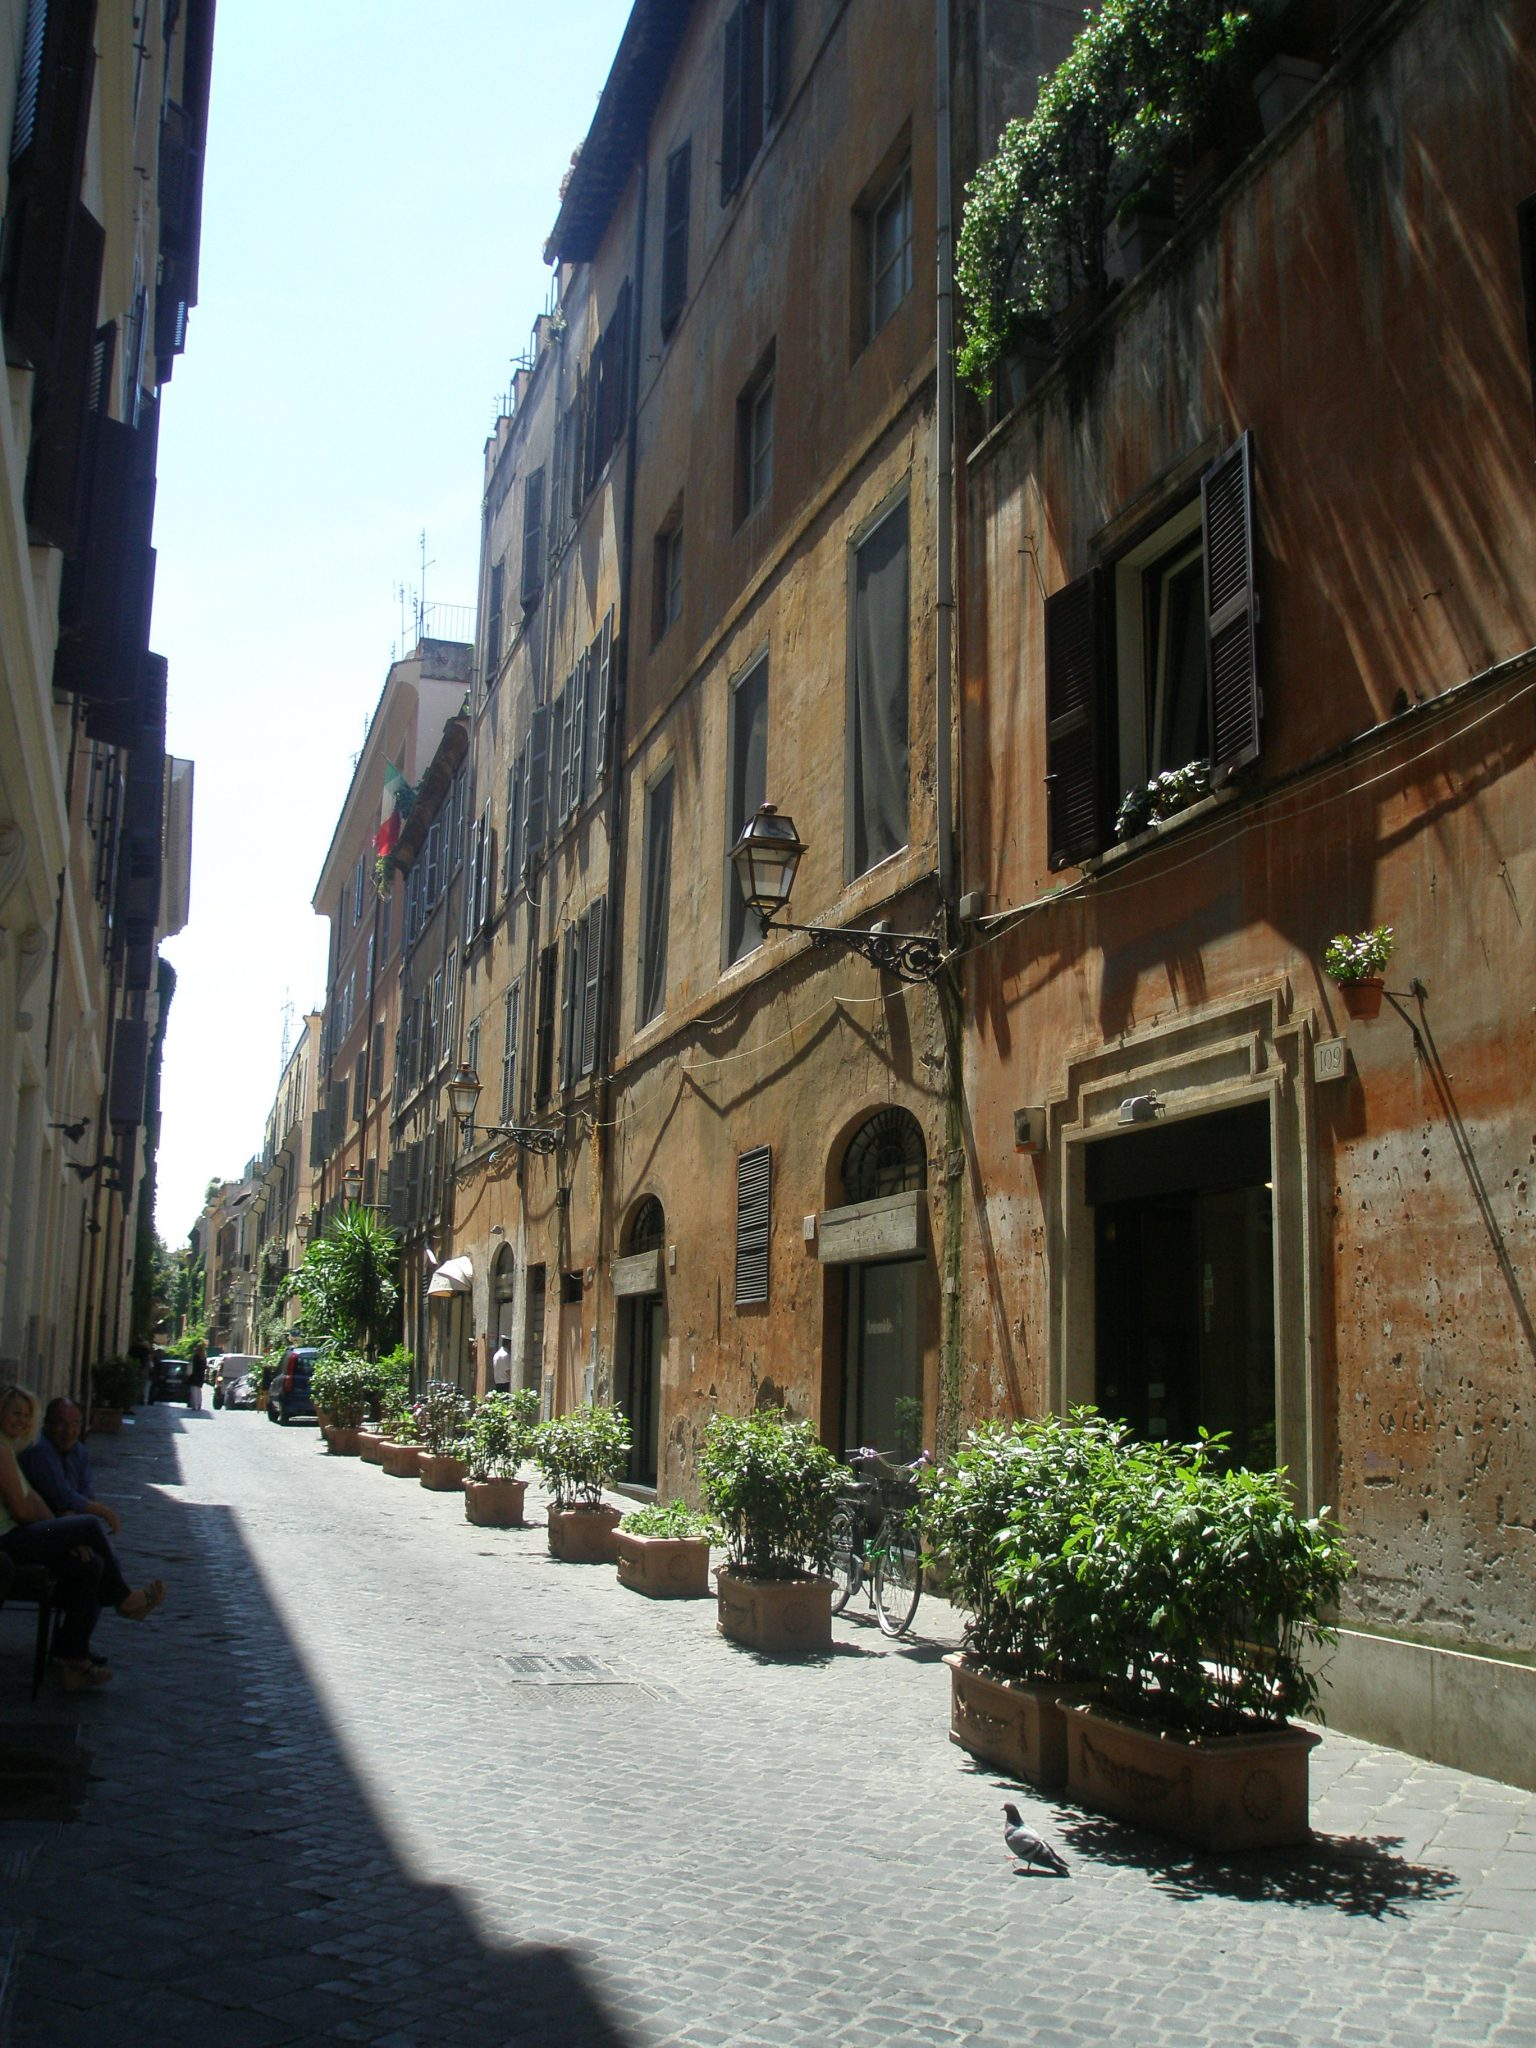 Via Margutta. This narrow street, which runs north-south from just below Piazza del Popolo towards the Spanish Steps, has historically been a place where craftsmen and artists have worked and lived. These days, however, Via Margutta is a Very Posh Neighborhood.